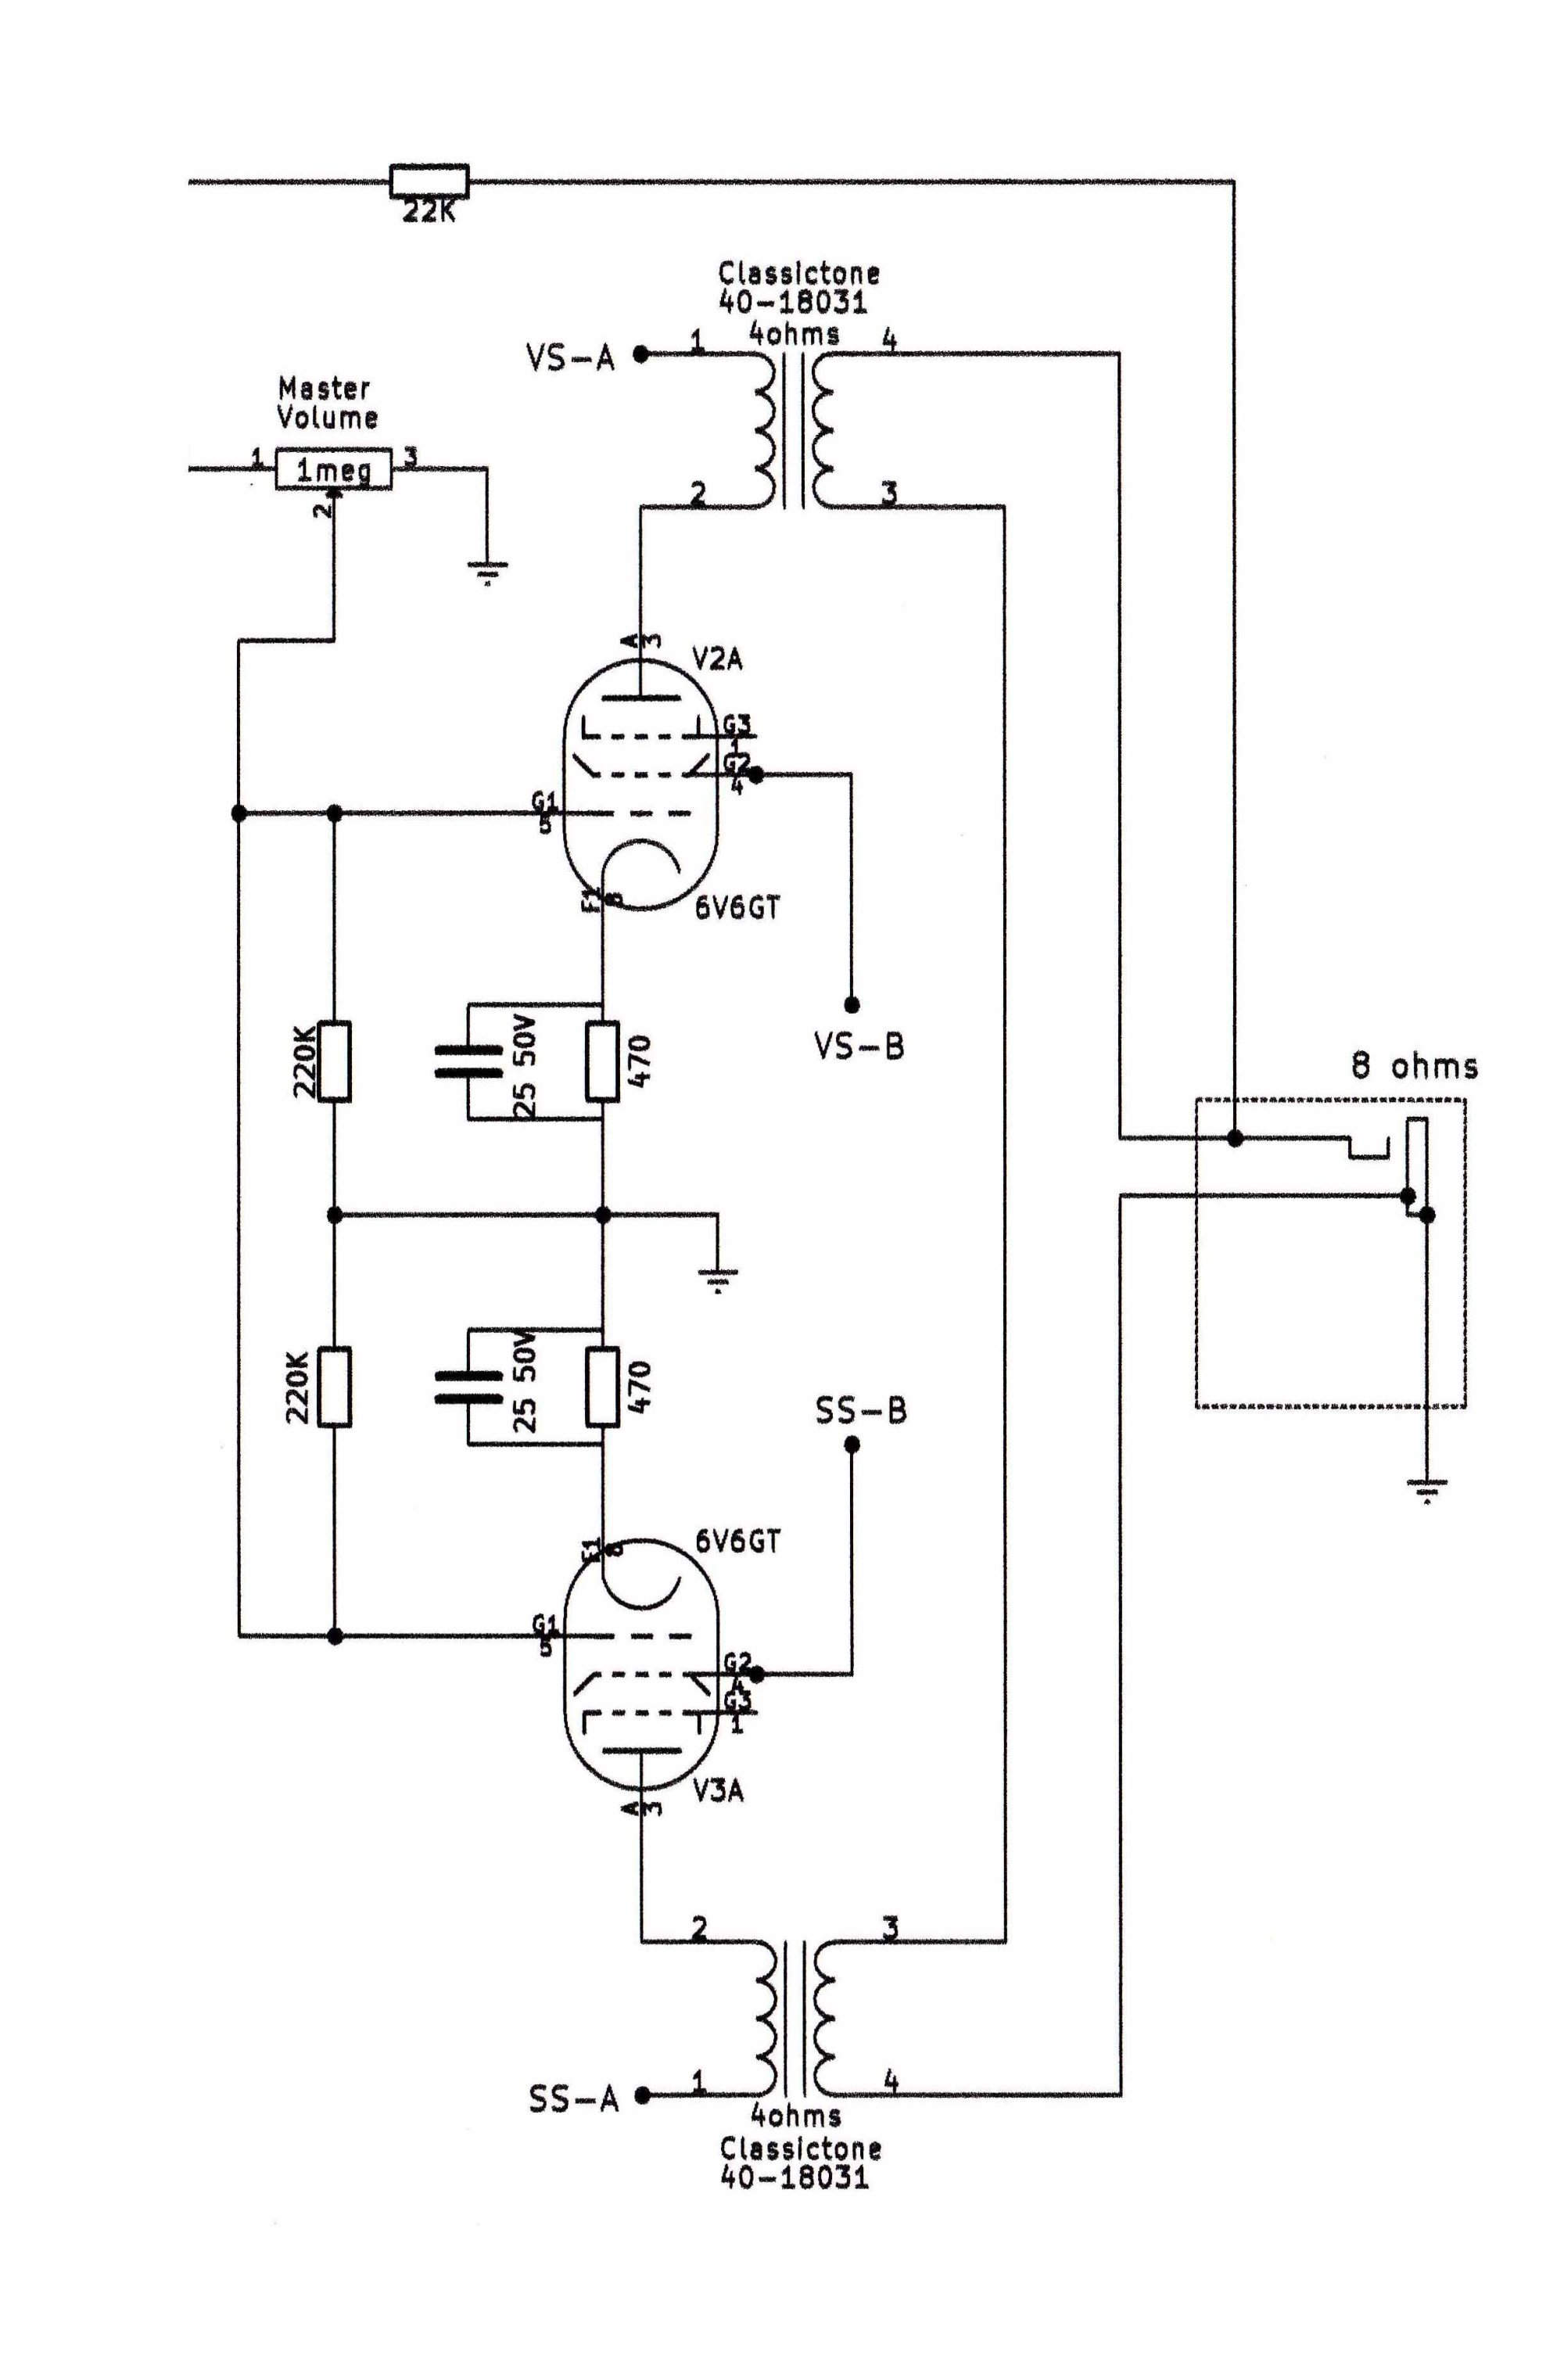 hight resolution of cl 2 transformer wiring diagram wiring librarycl 2 transformer wiring diagram